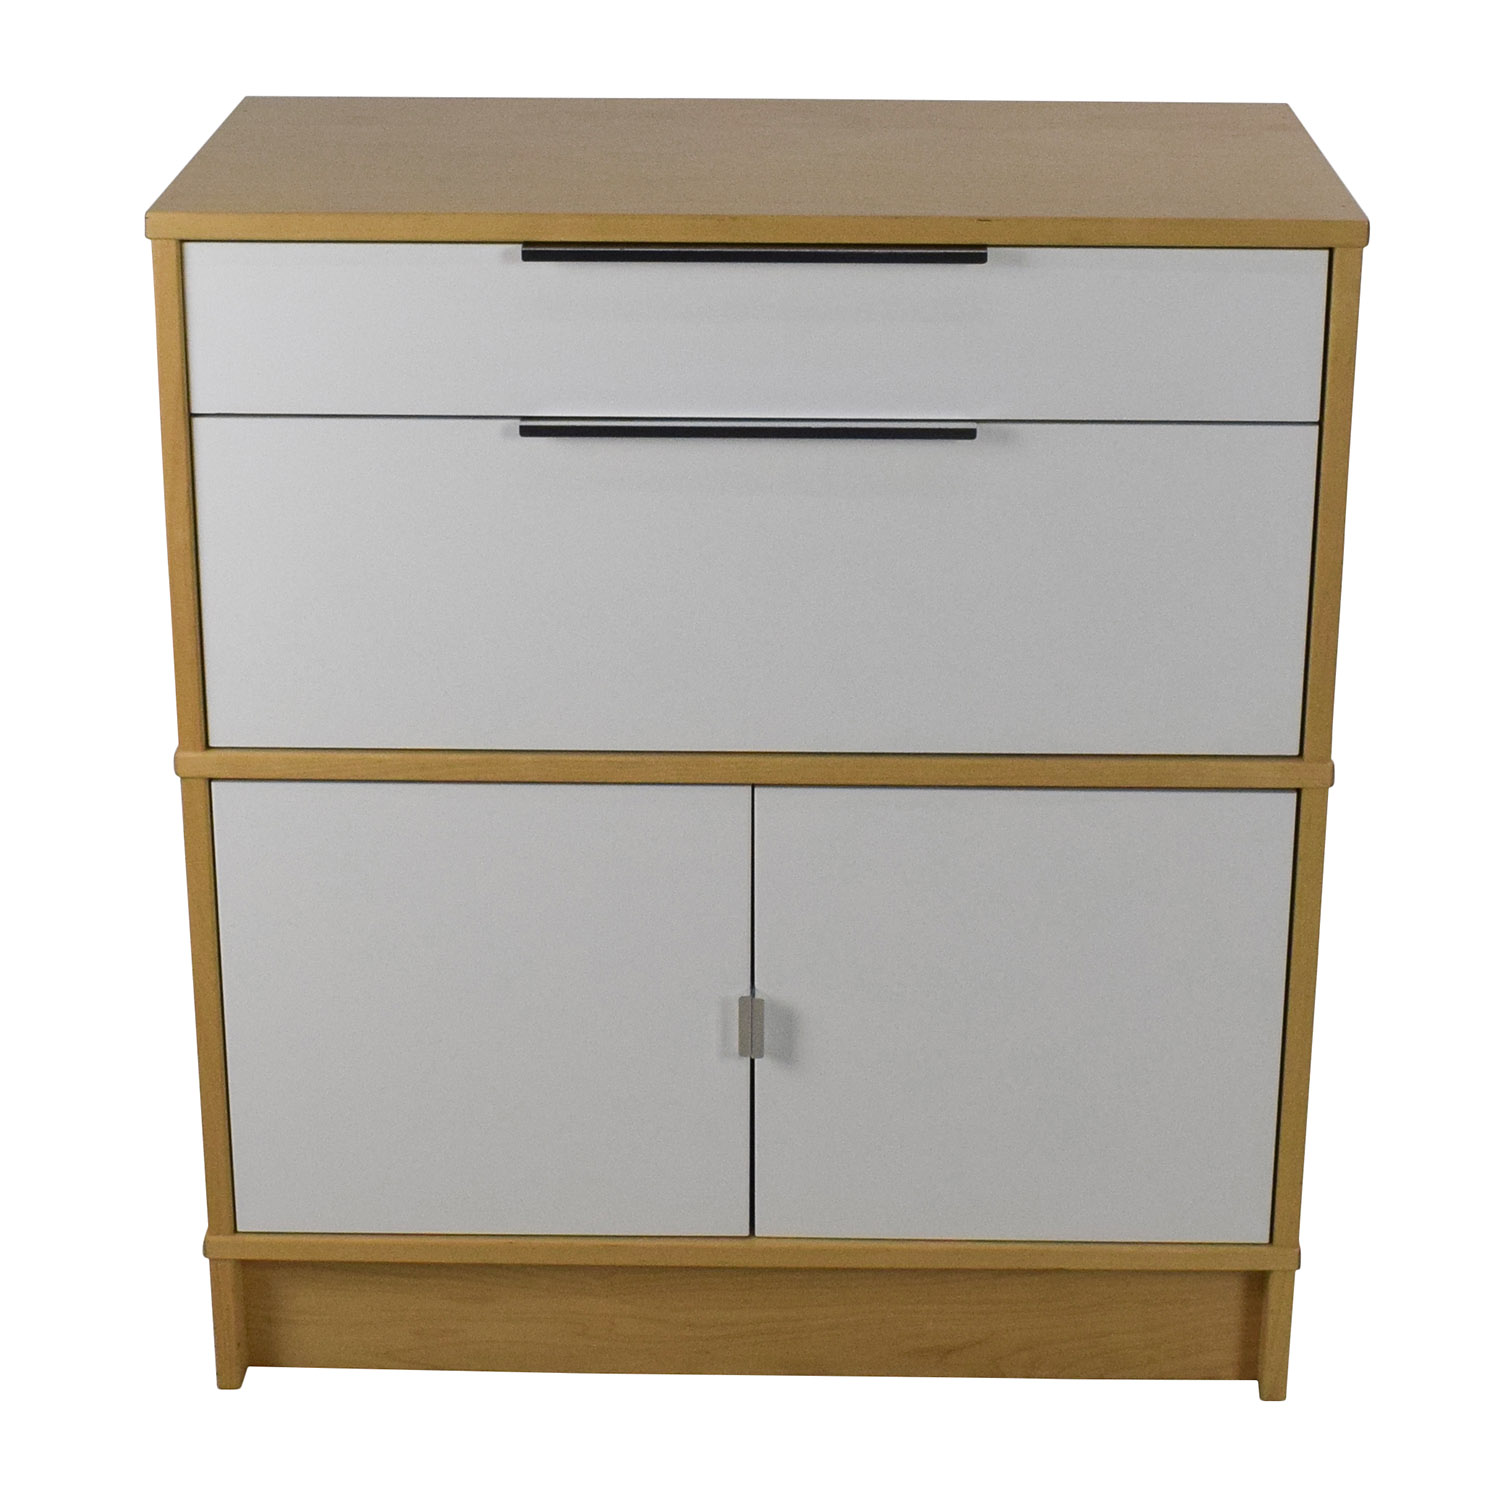 ikea kitchen hutch gooseneck faucet storage cabinets with doors